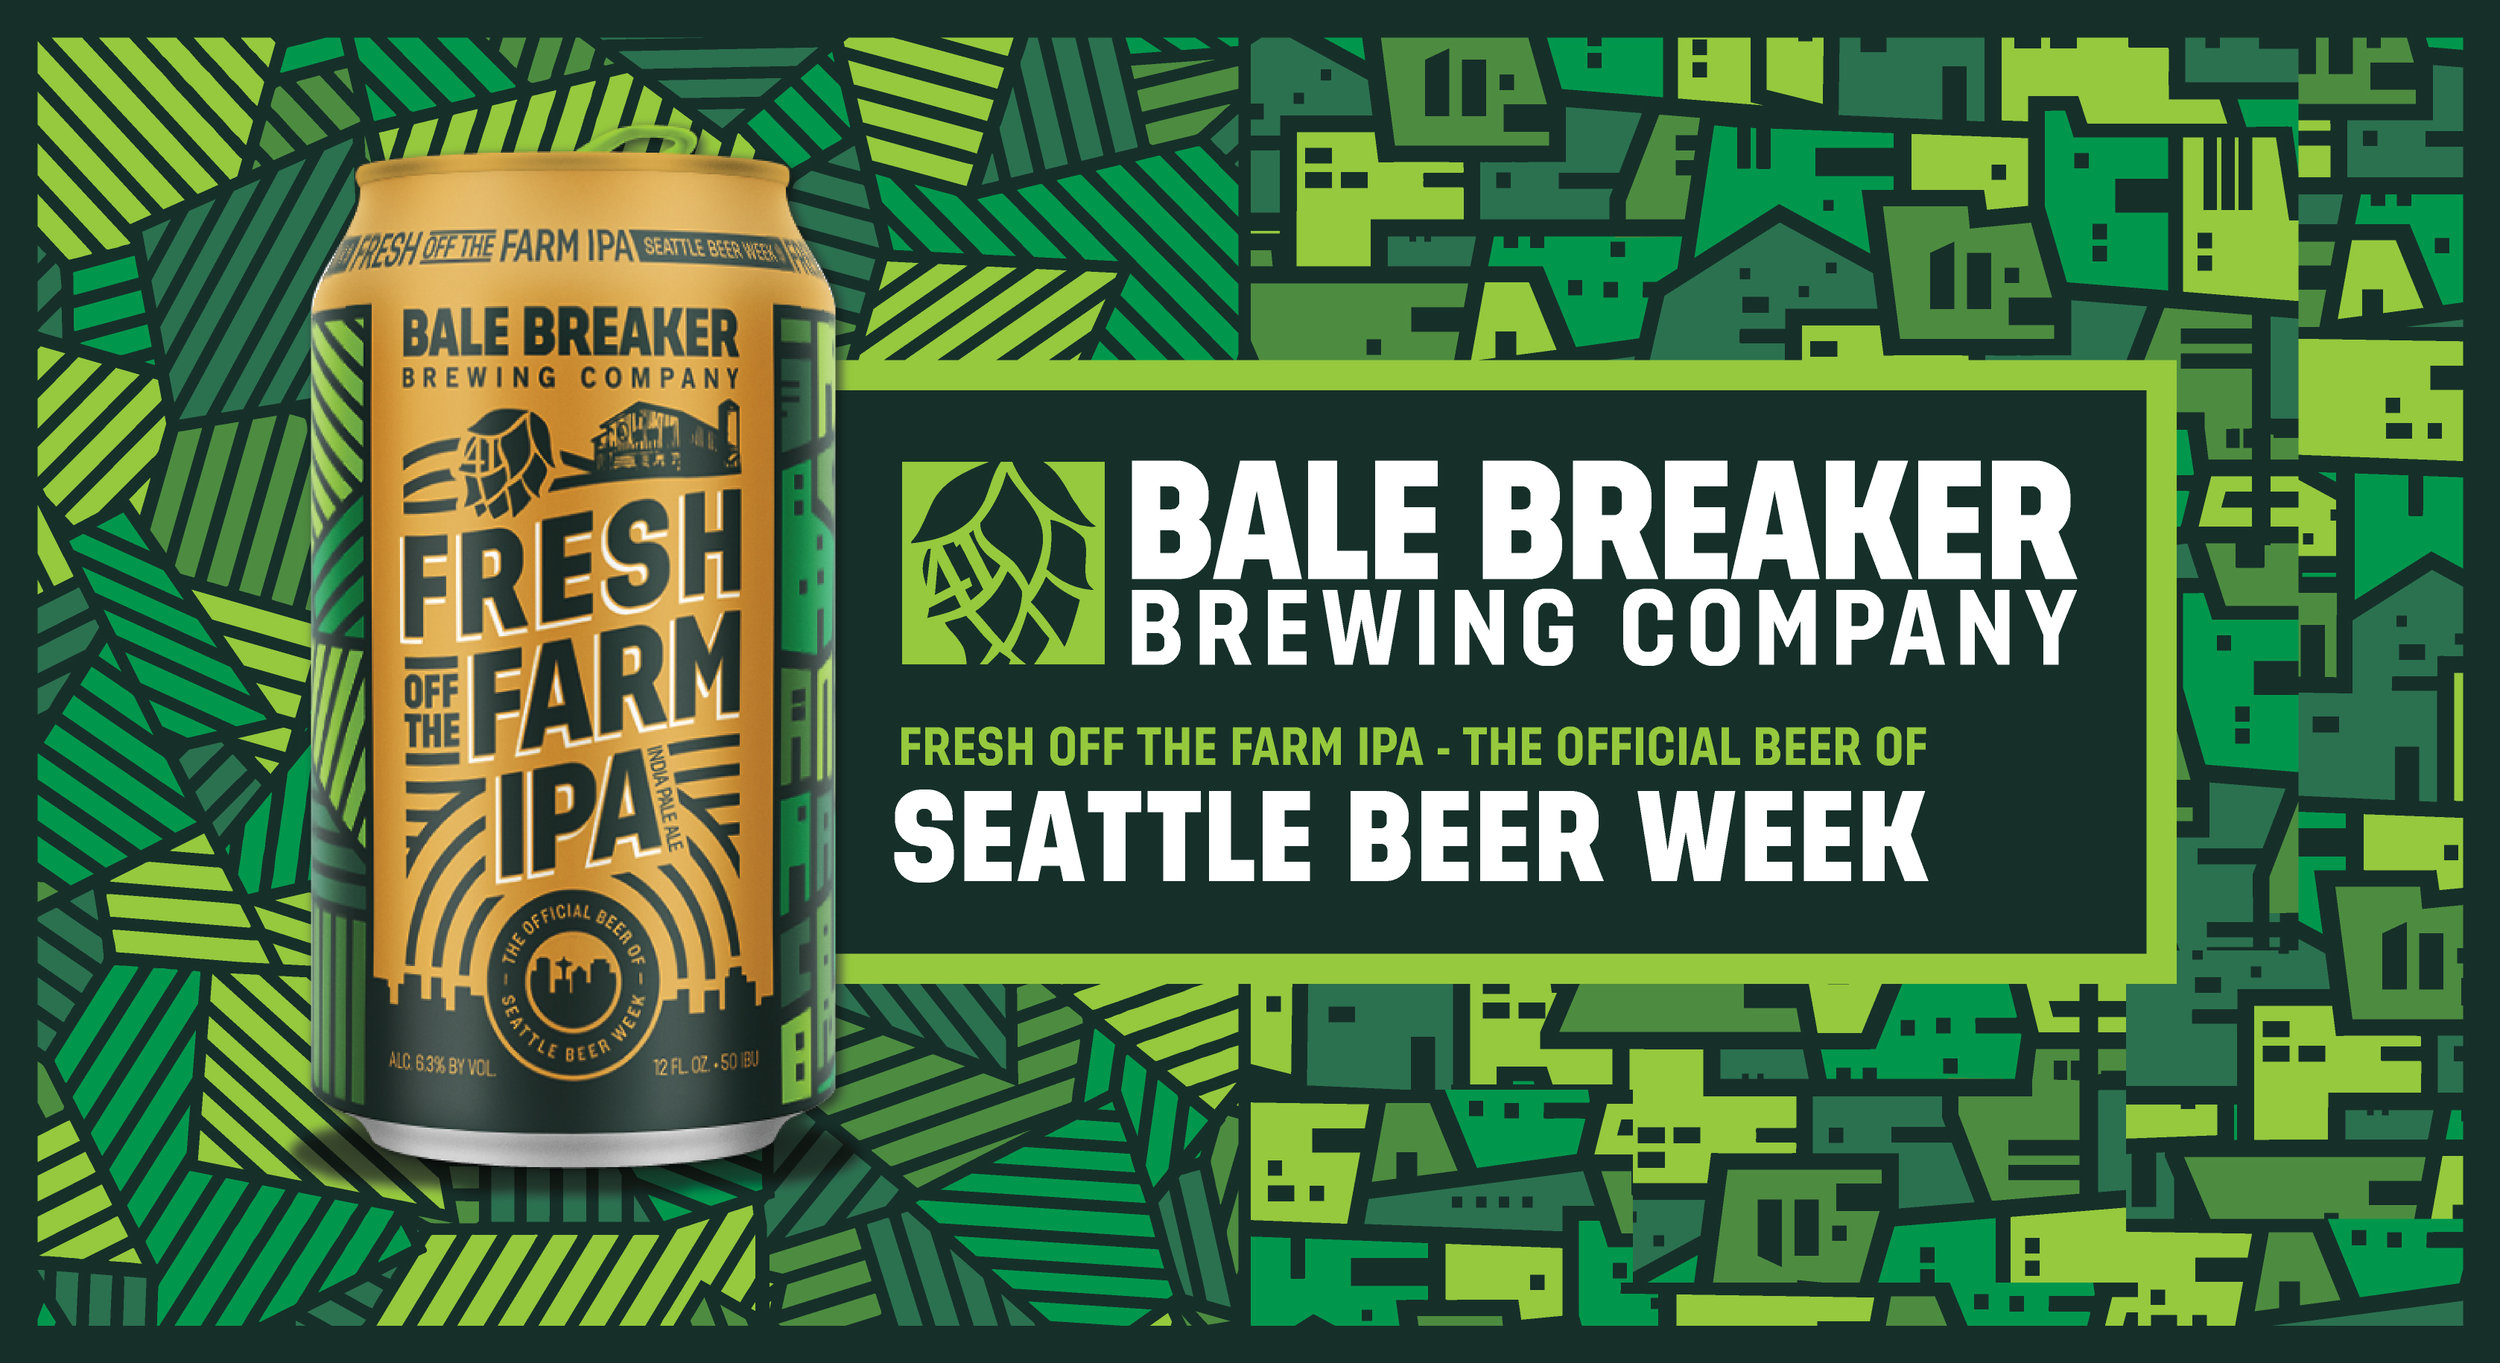 image courtesy Bale Breaker Brewing Company